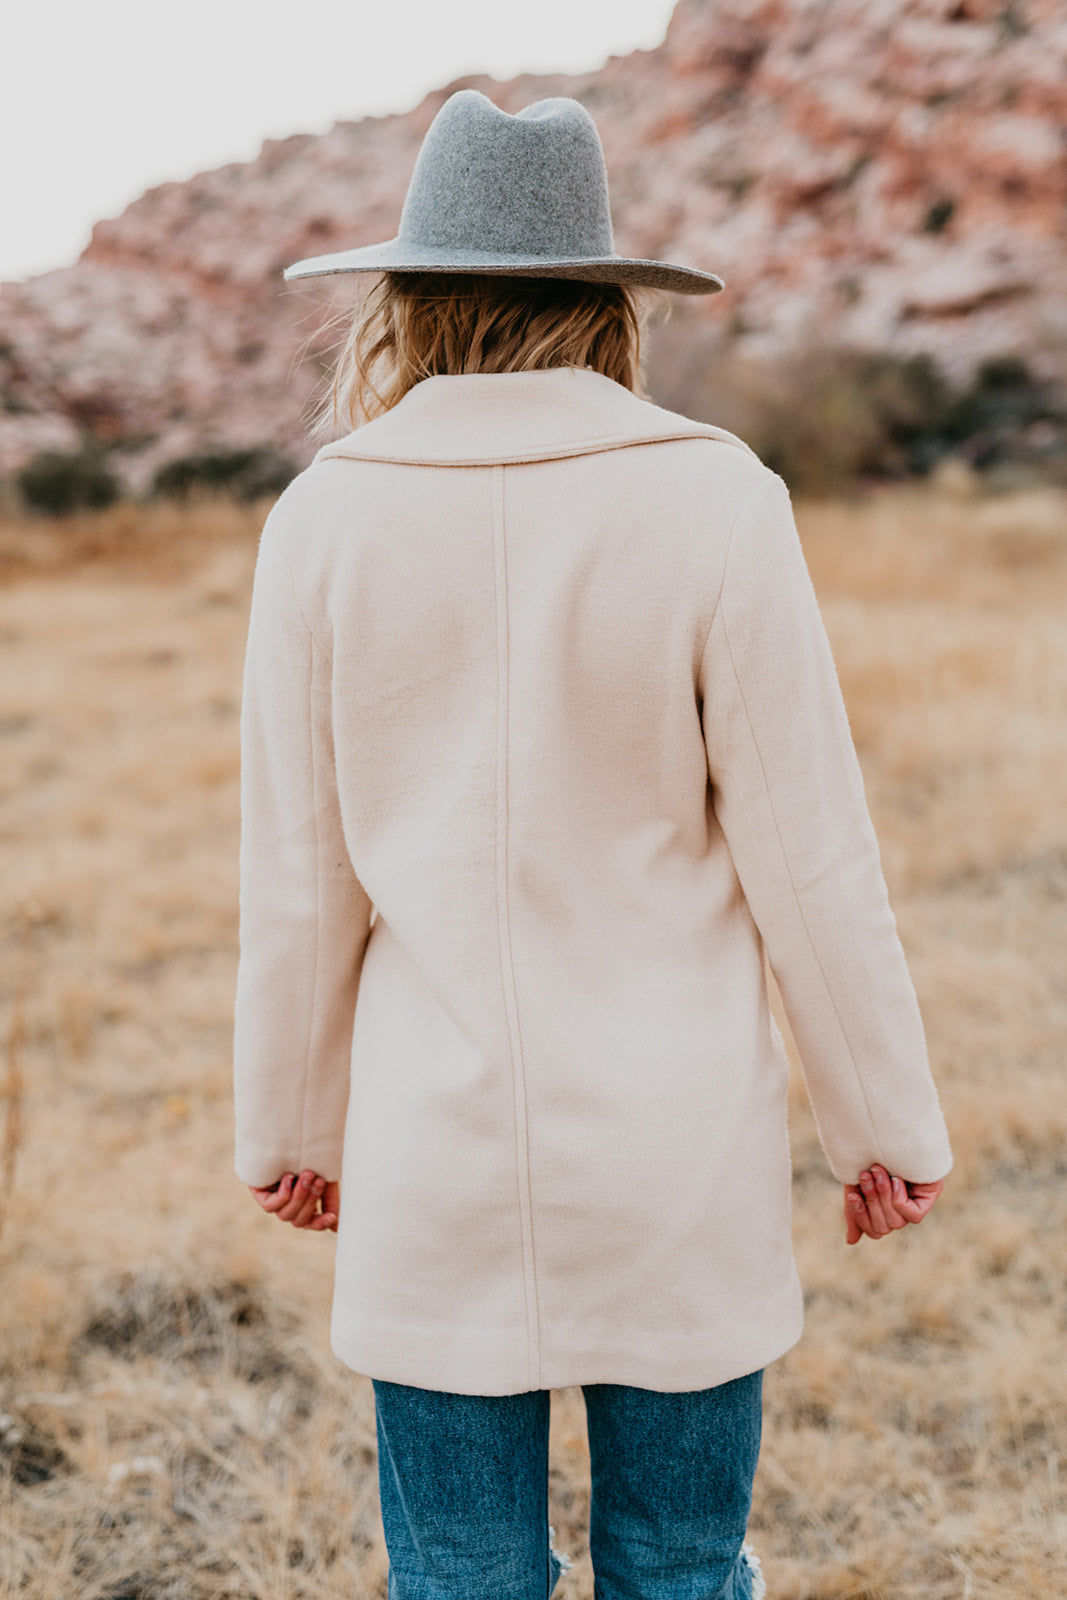 THE GWYNETH PEA COAT IN VANILLA